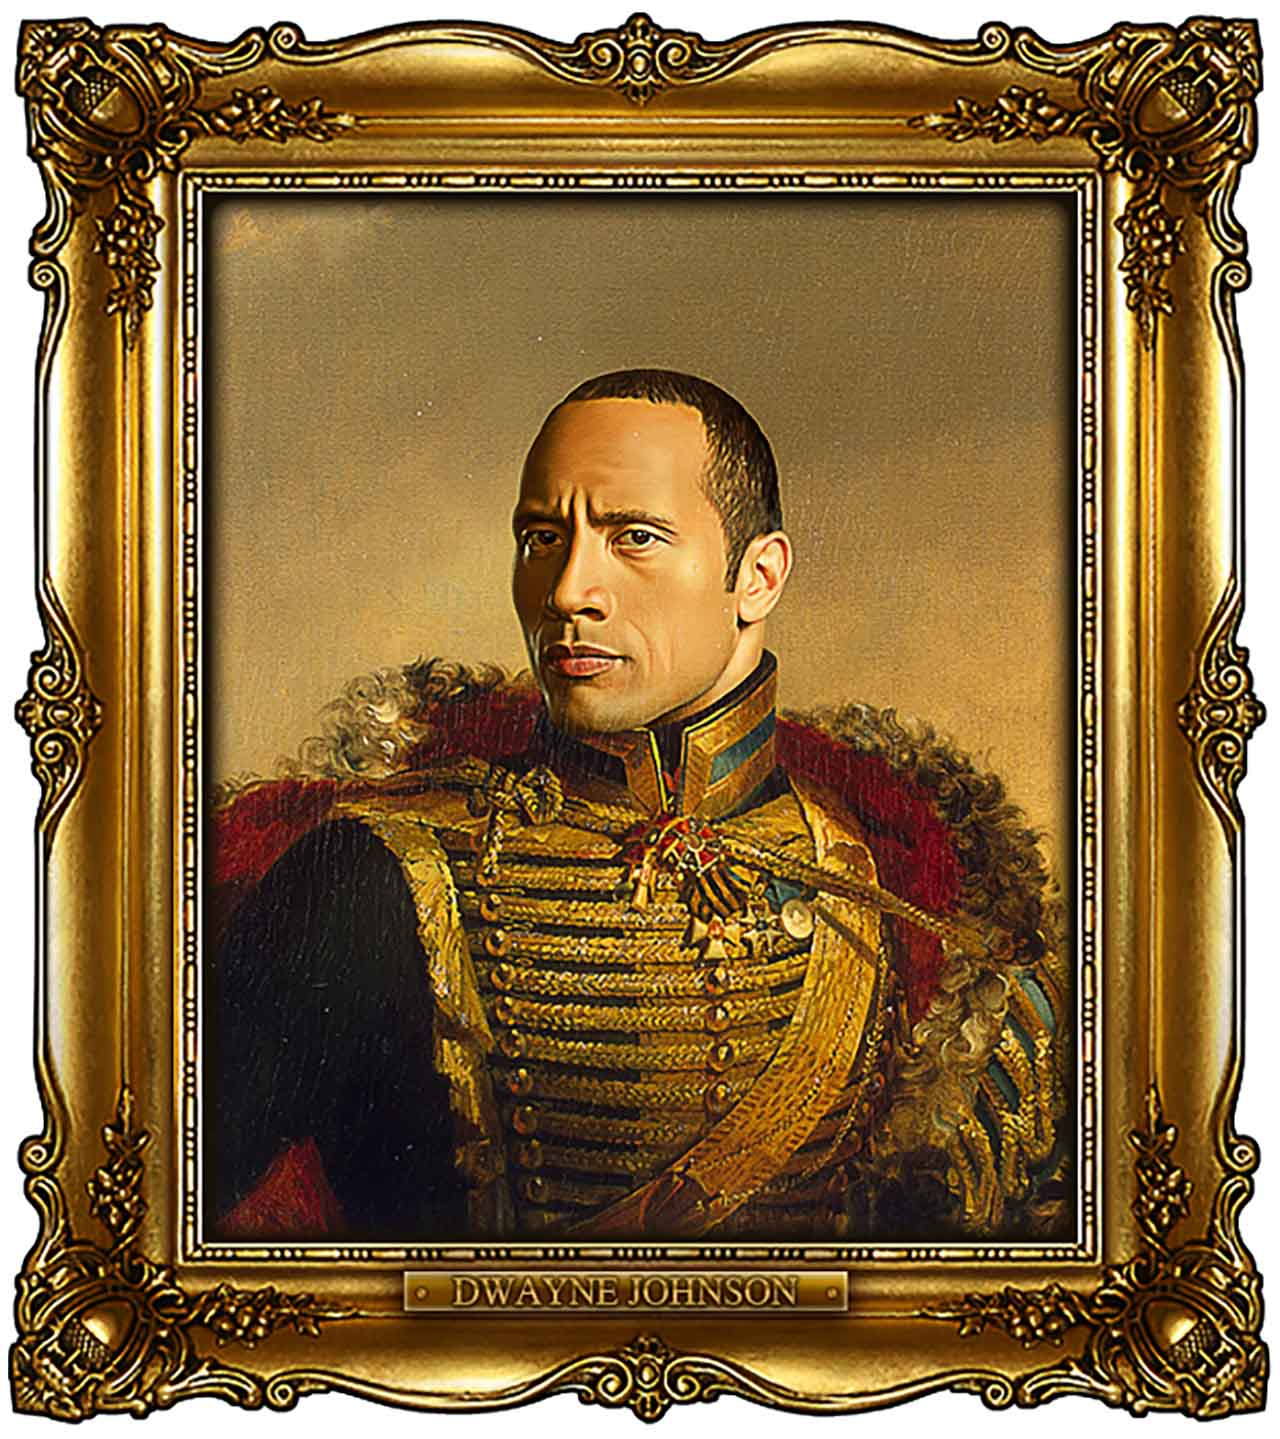 Artist Turns Famous Actors Into Russian Generals - Dwayne Johnson